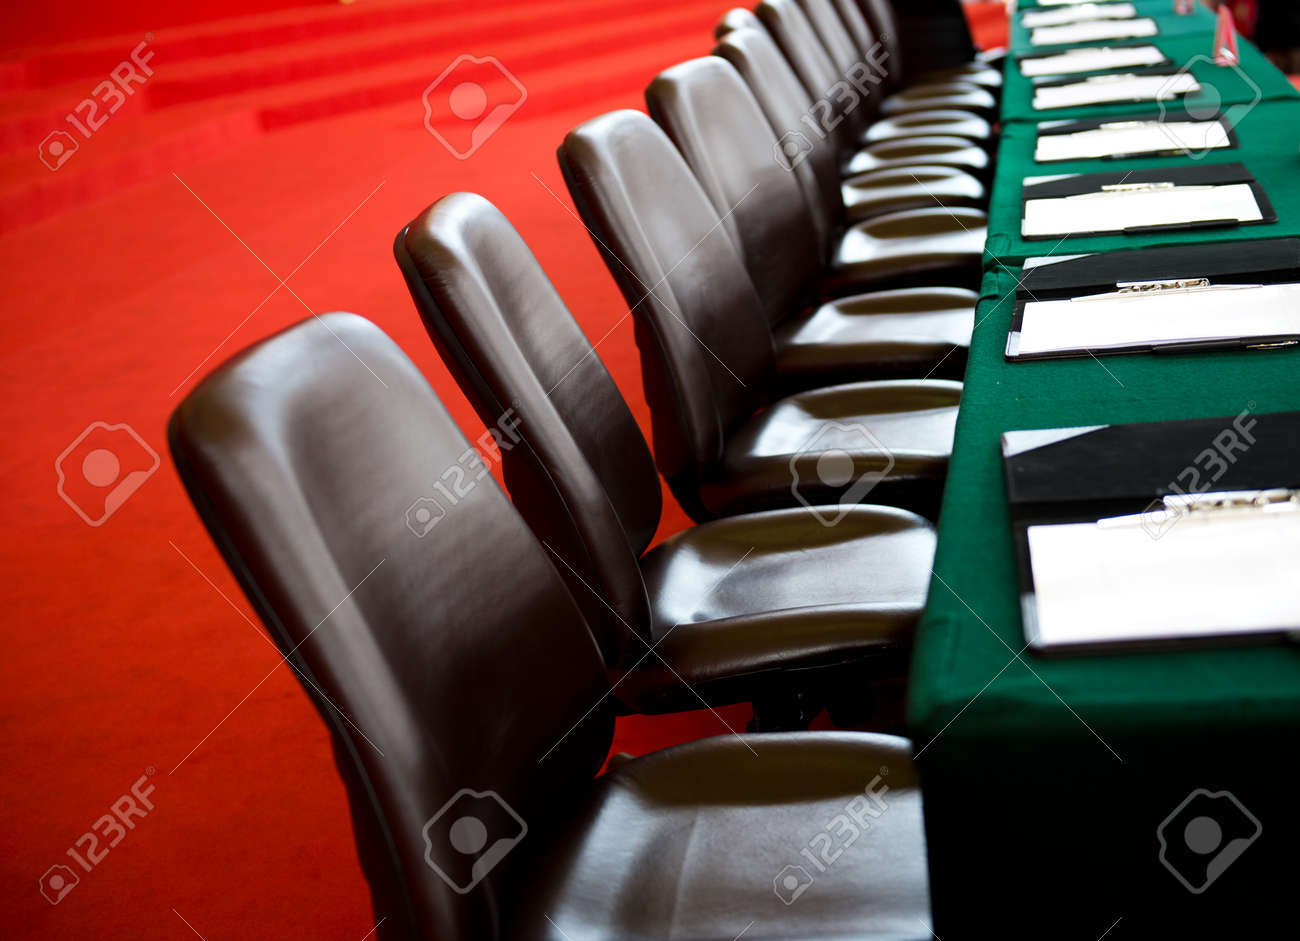 Conference table and chairs in meeting room Stock Photo - 33781309